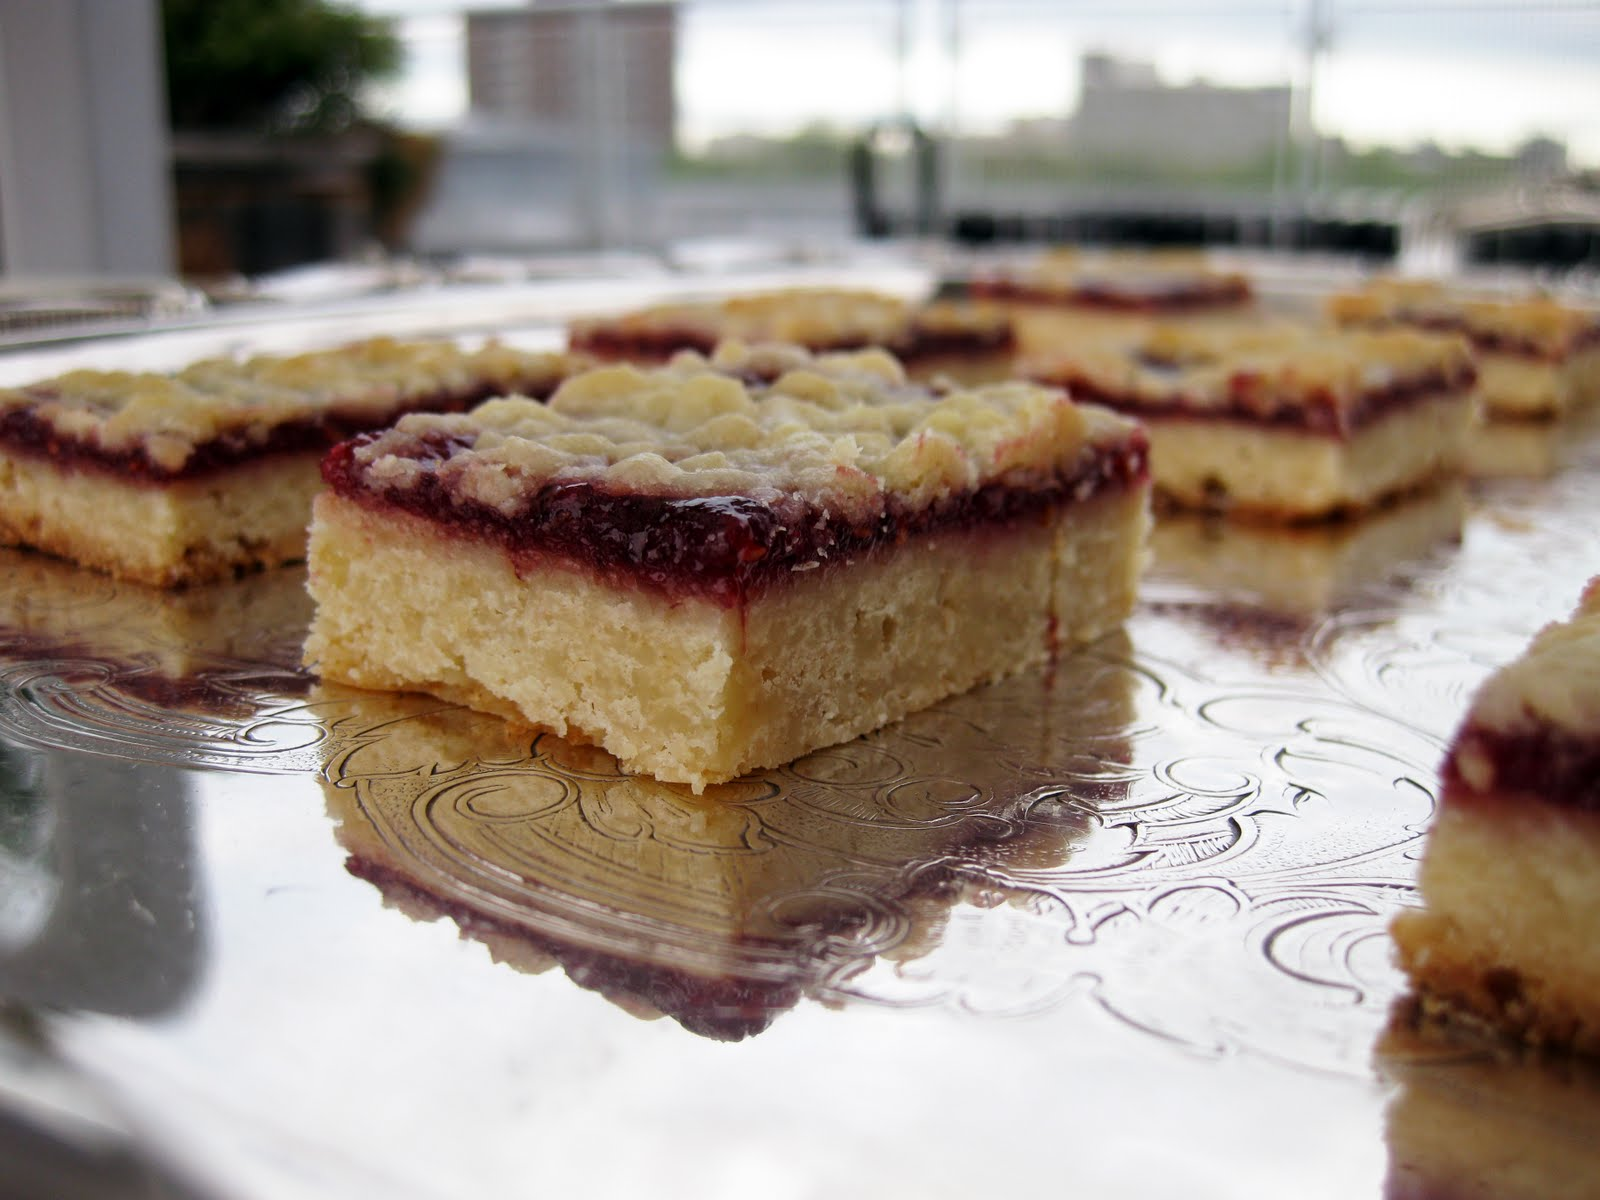 Shortbread bars with crumb topping paleo recipes dessert recipes and